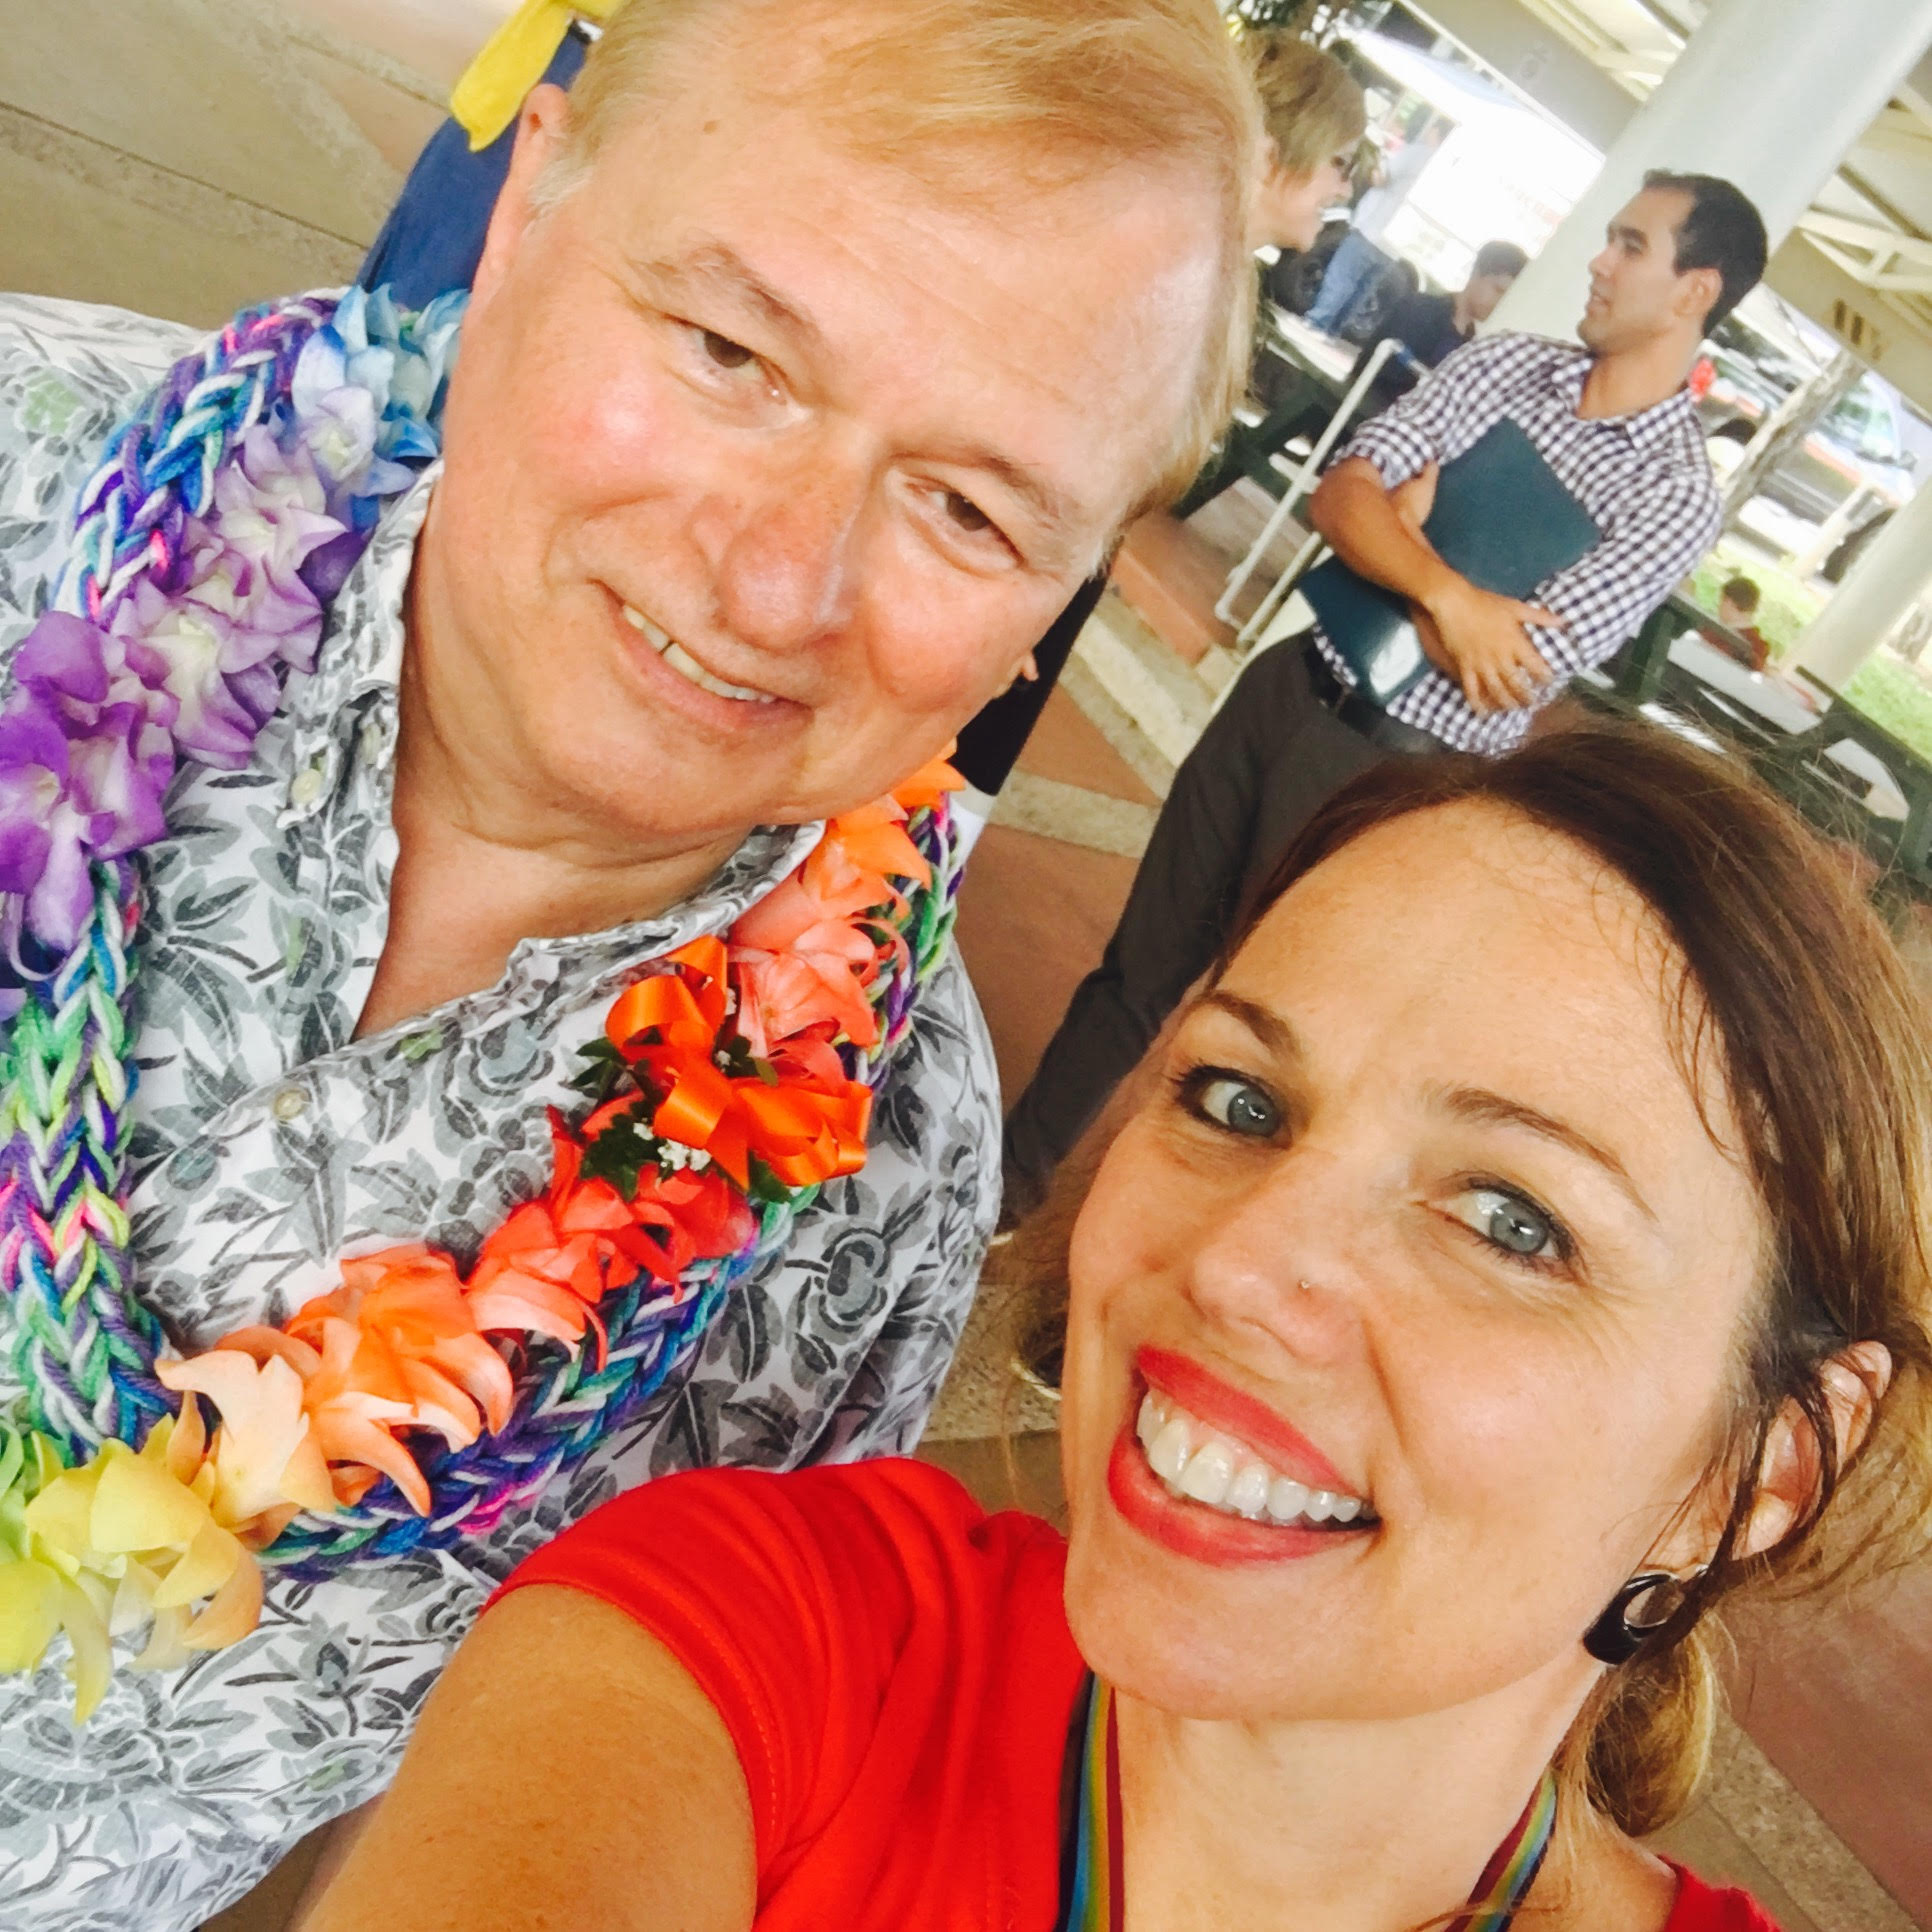 UH Hilo Chancellor Don Straney keynotes Coming Out Day